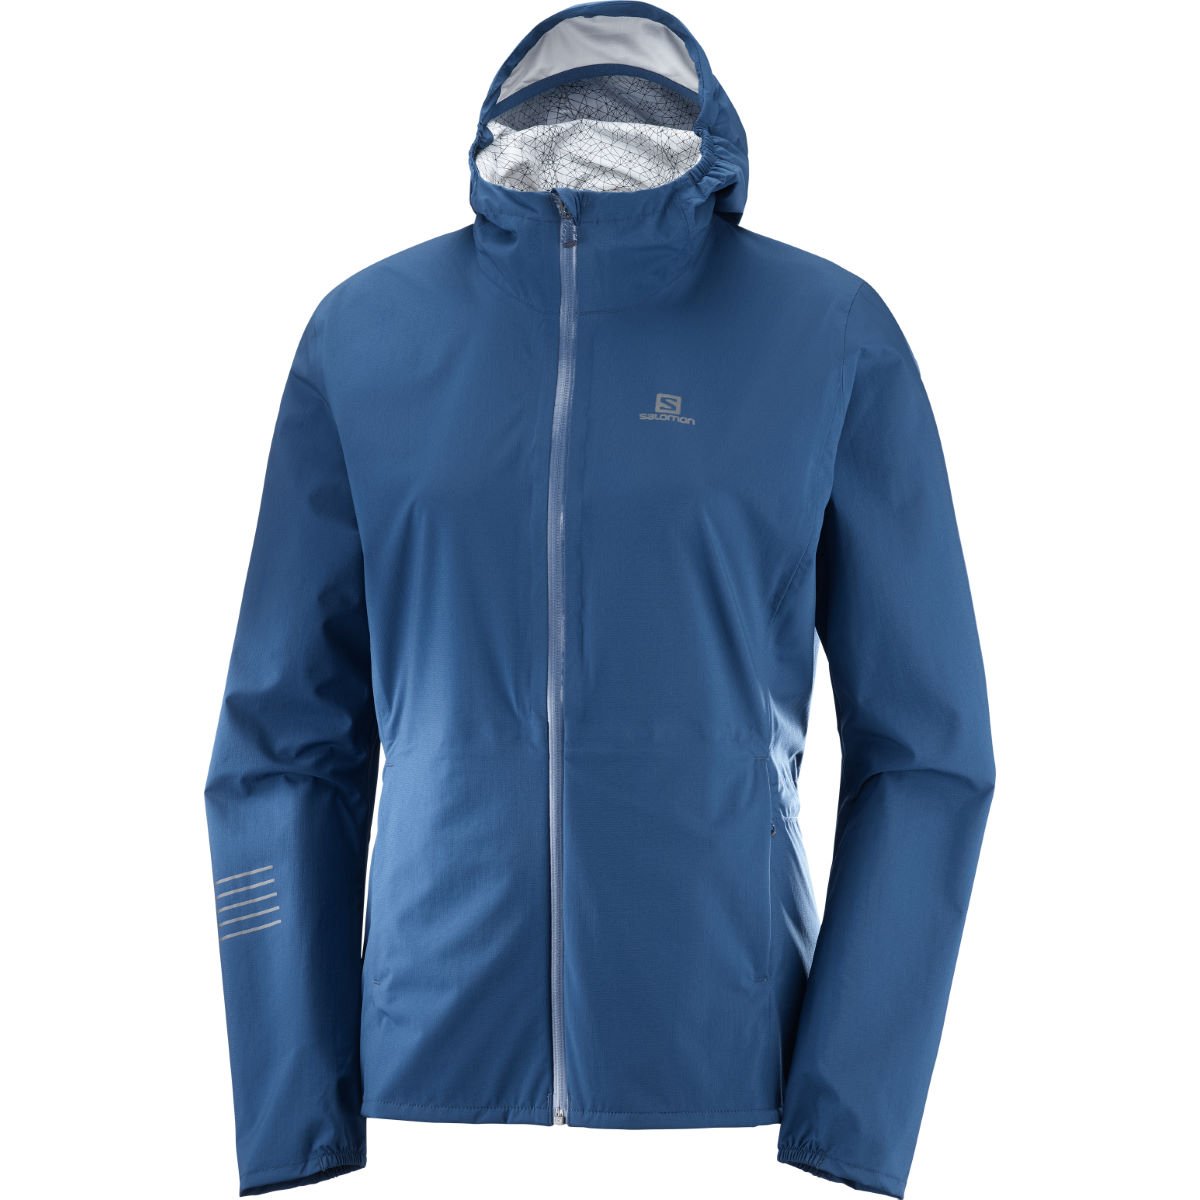 Salomon Salomon Womens Lightning Waterproof Jacket   Jackets